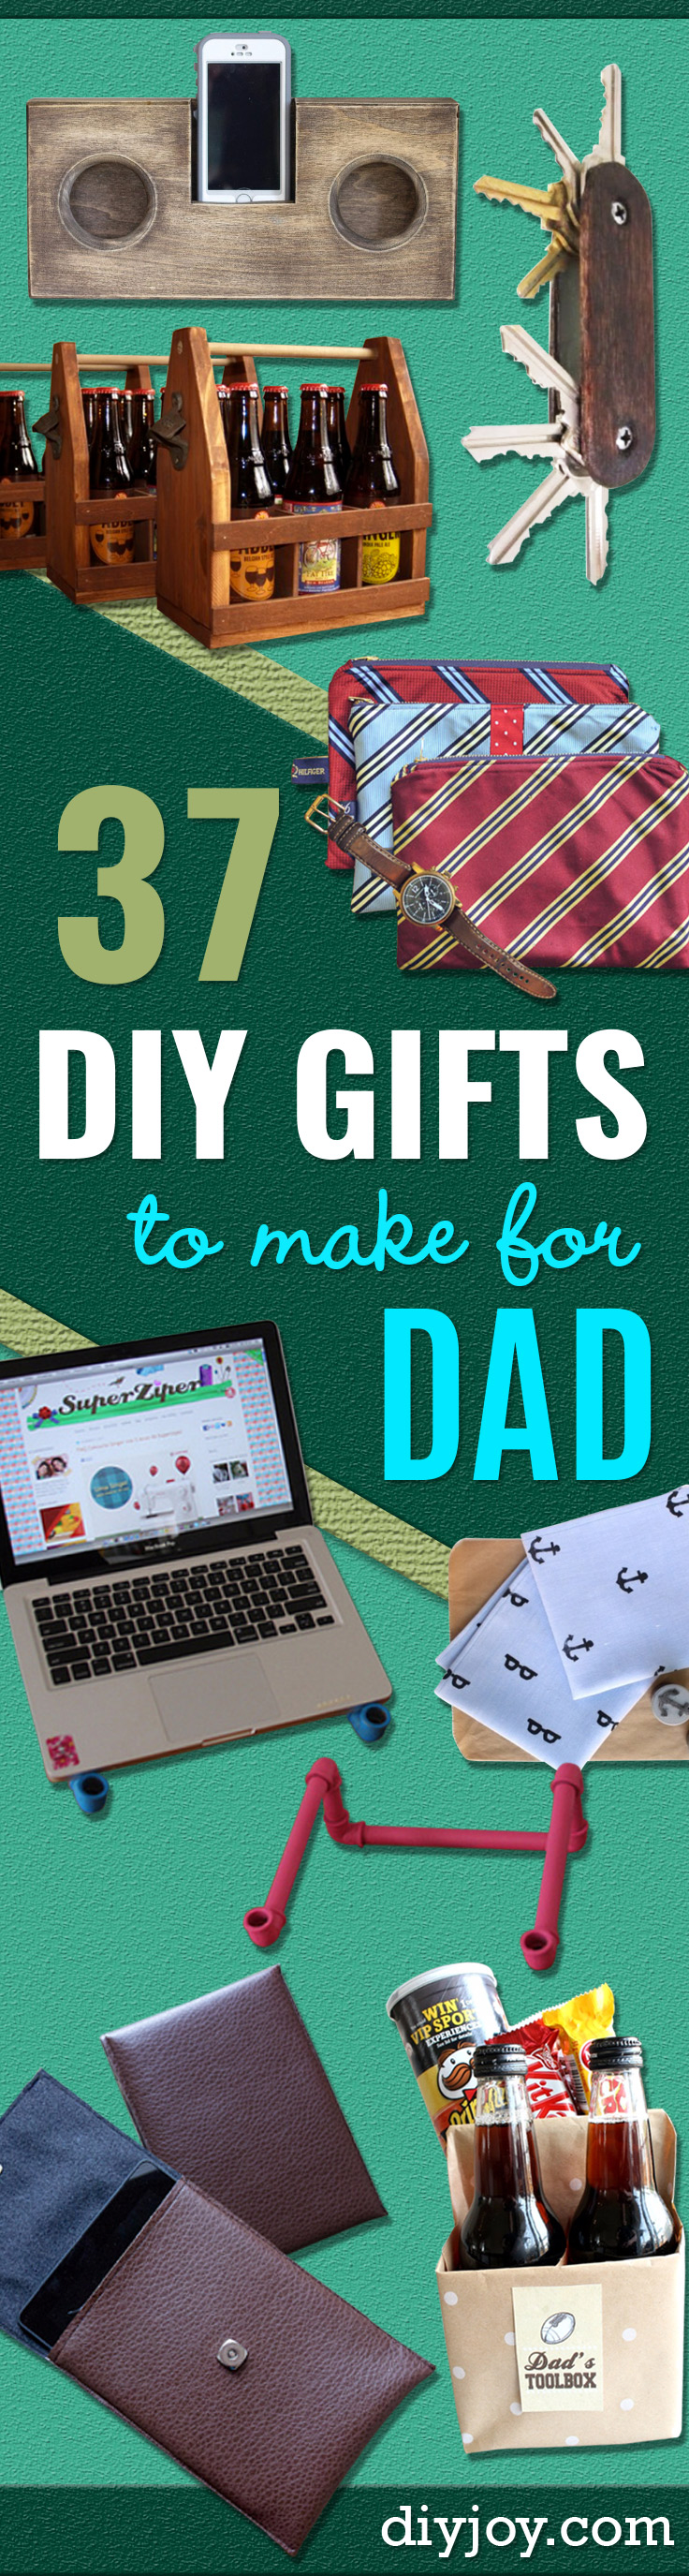 DIY Gifts for Dad - Best Craft Projects and Gift Ideas You Can Make for Your Father - Last Minute Presents for Birthday and Christmas - Creative Photo Projects, Gift Card Holders, Gift Baskets and Thoughtful Things to Give Fathers and Dads